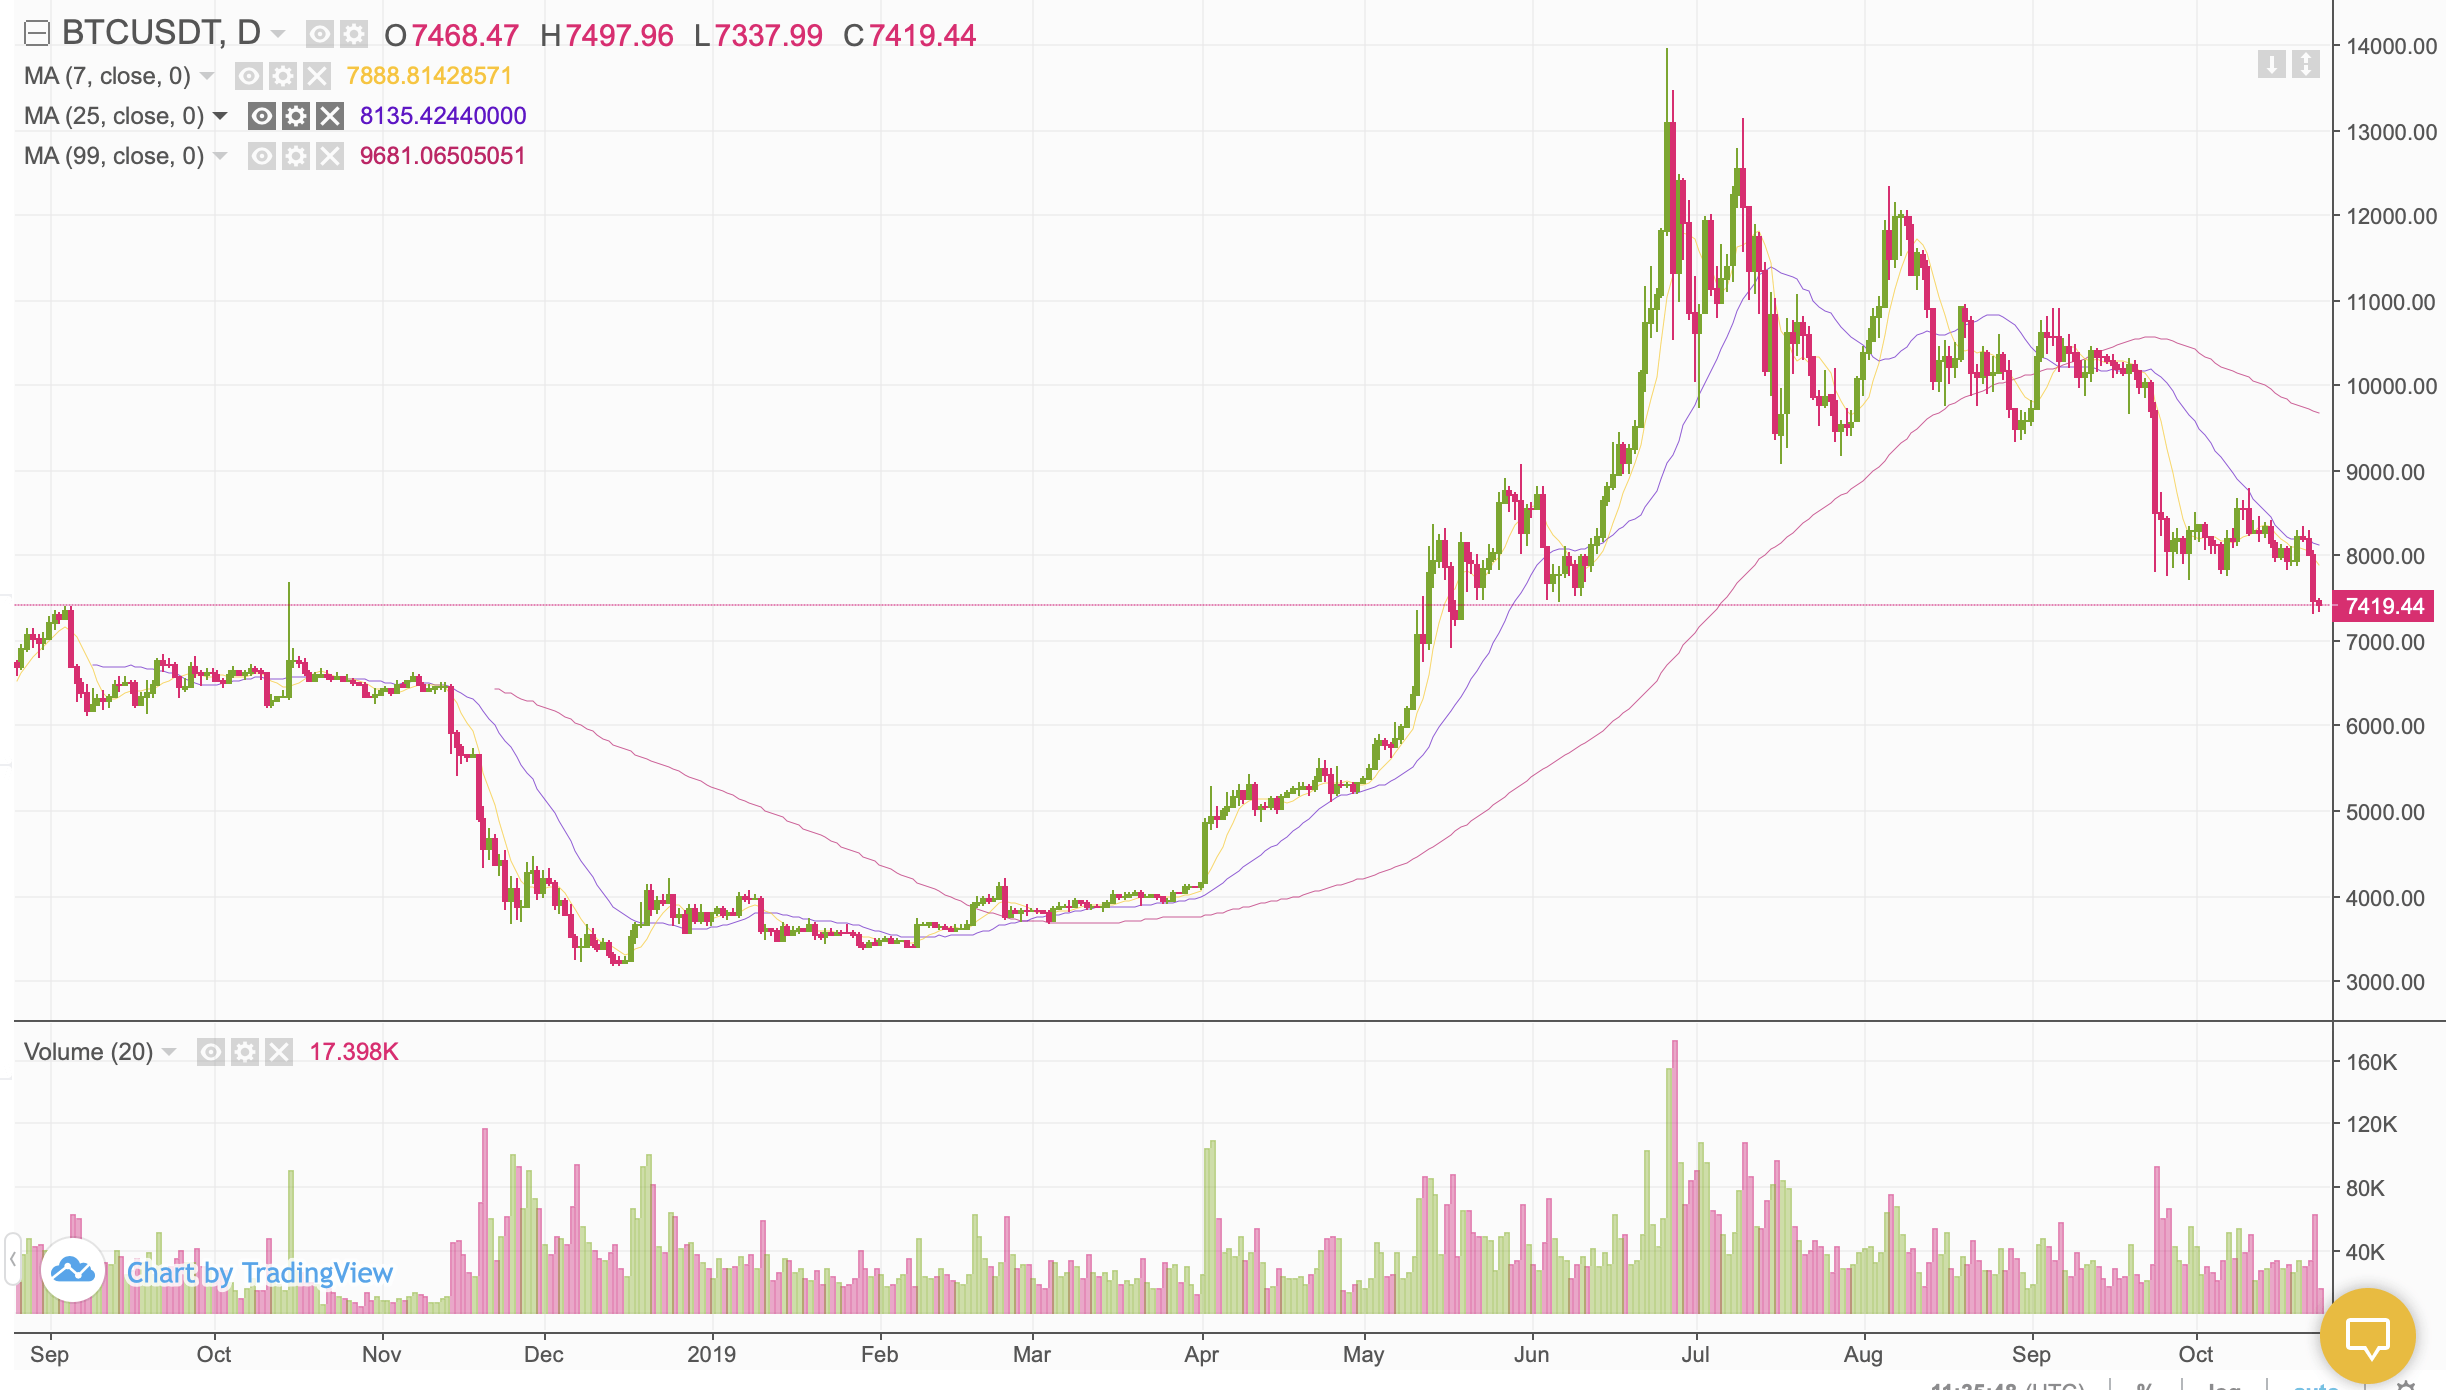 https www.marketwatch.com investing cryptocurrency btcusd